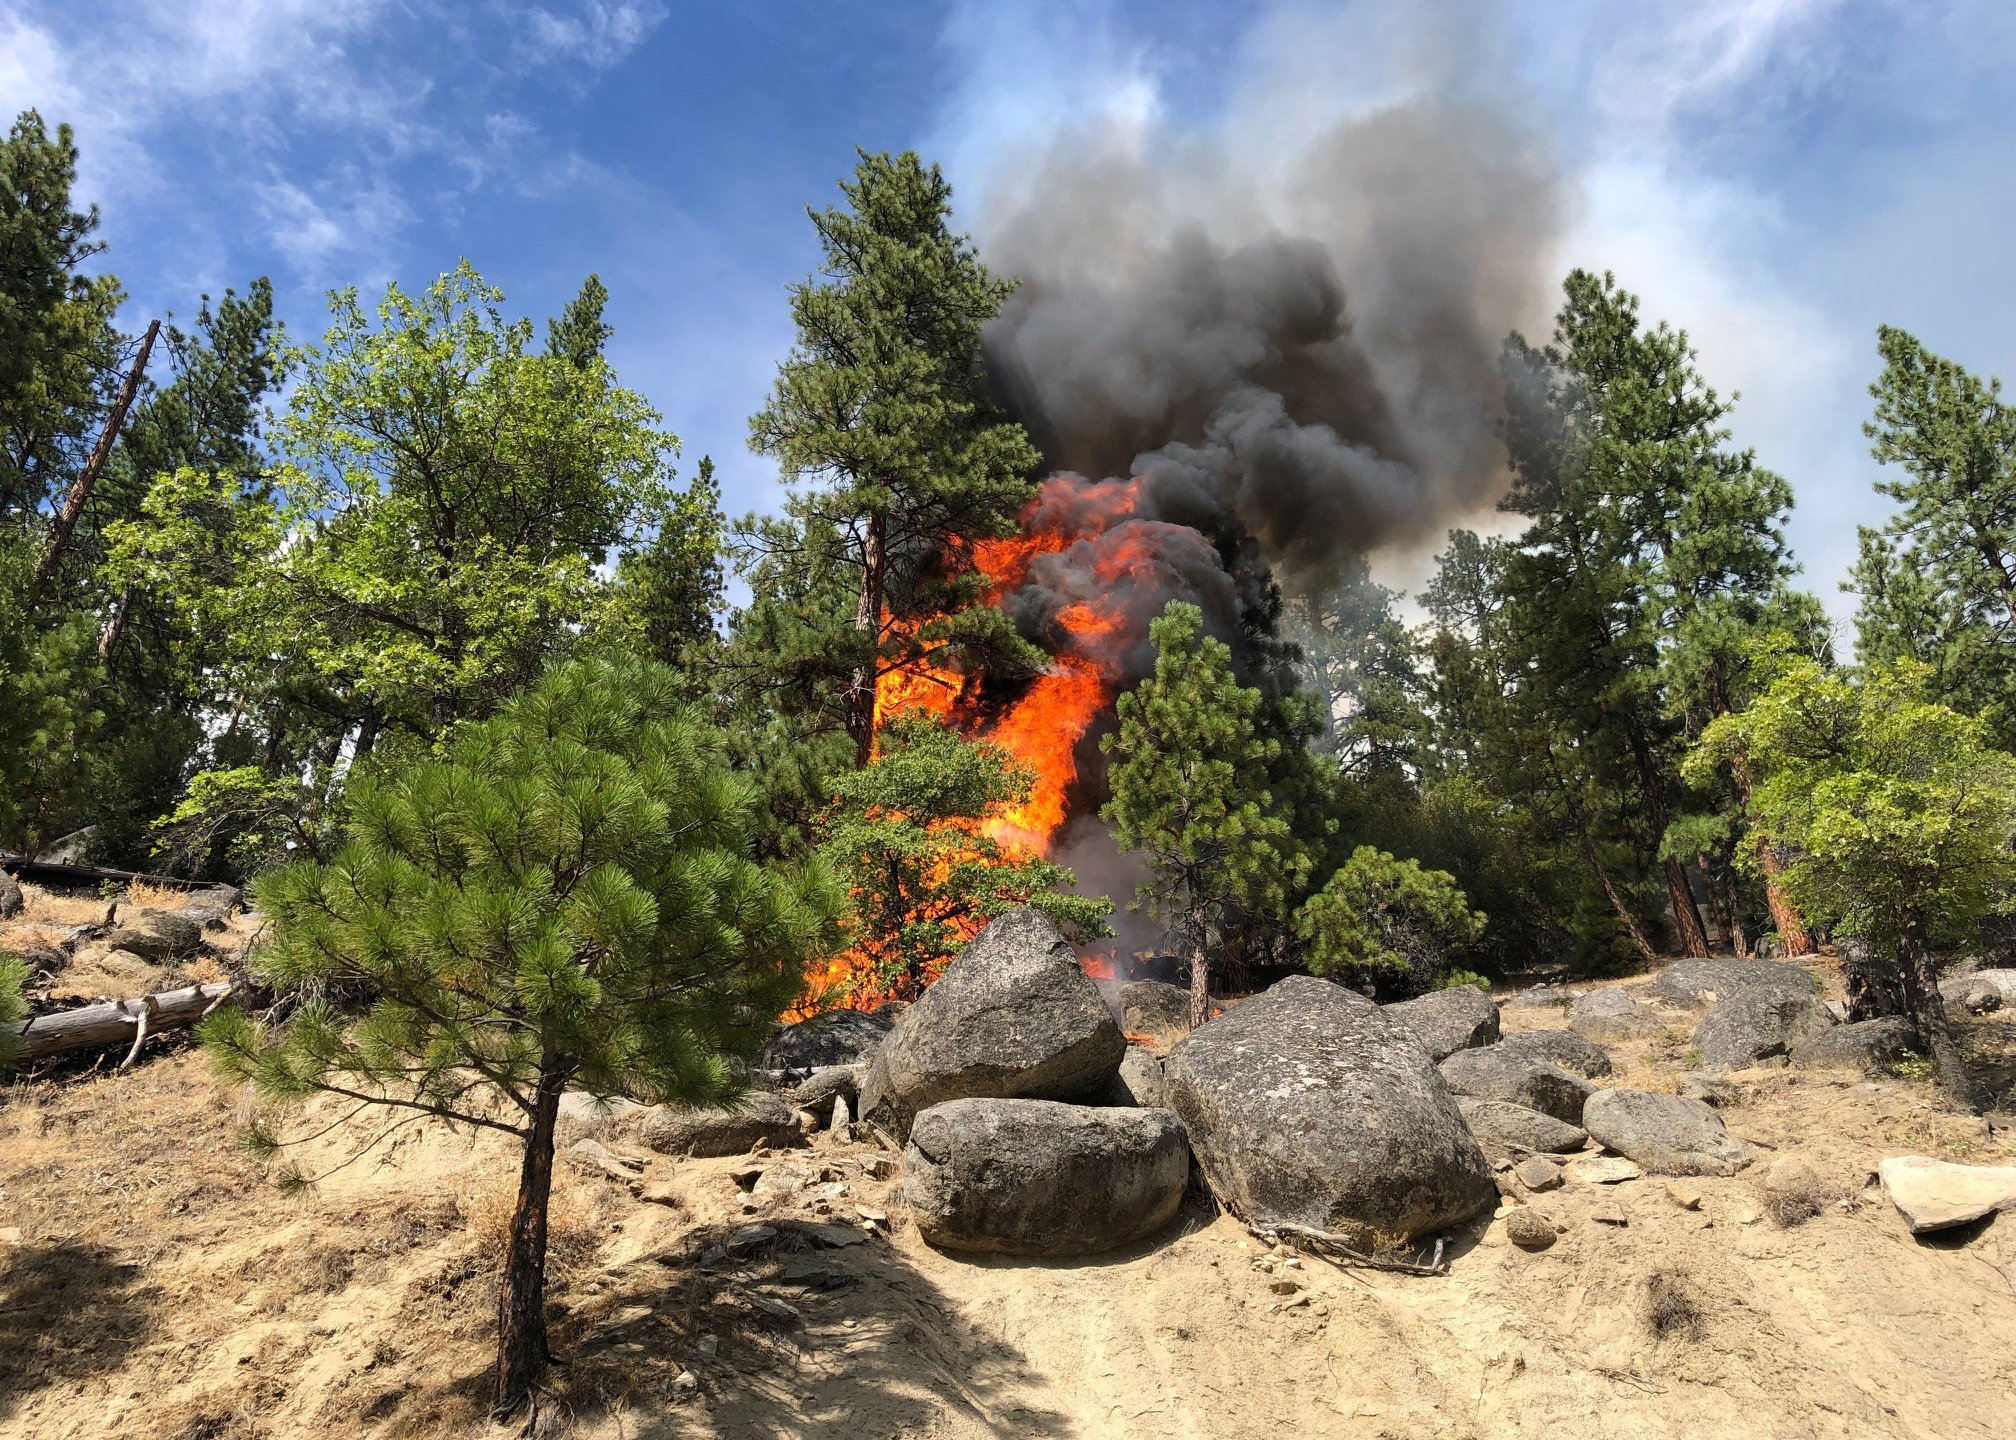 The Walker Fire is seen along its western perimeter near Wheeler Peak in Plumas National Forest in a photo released Sept. 9, 2019, by the U.S. Forest Service.